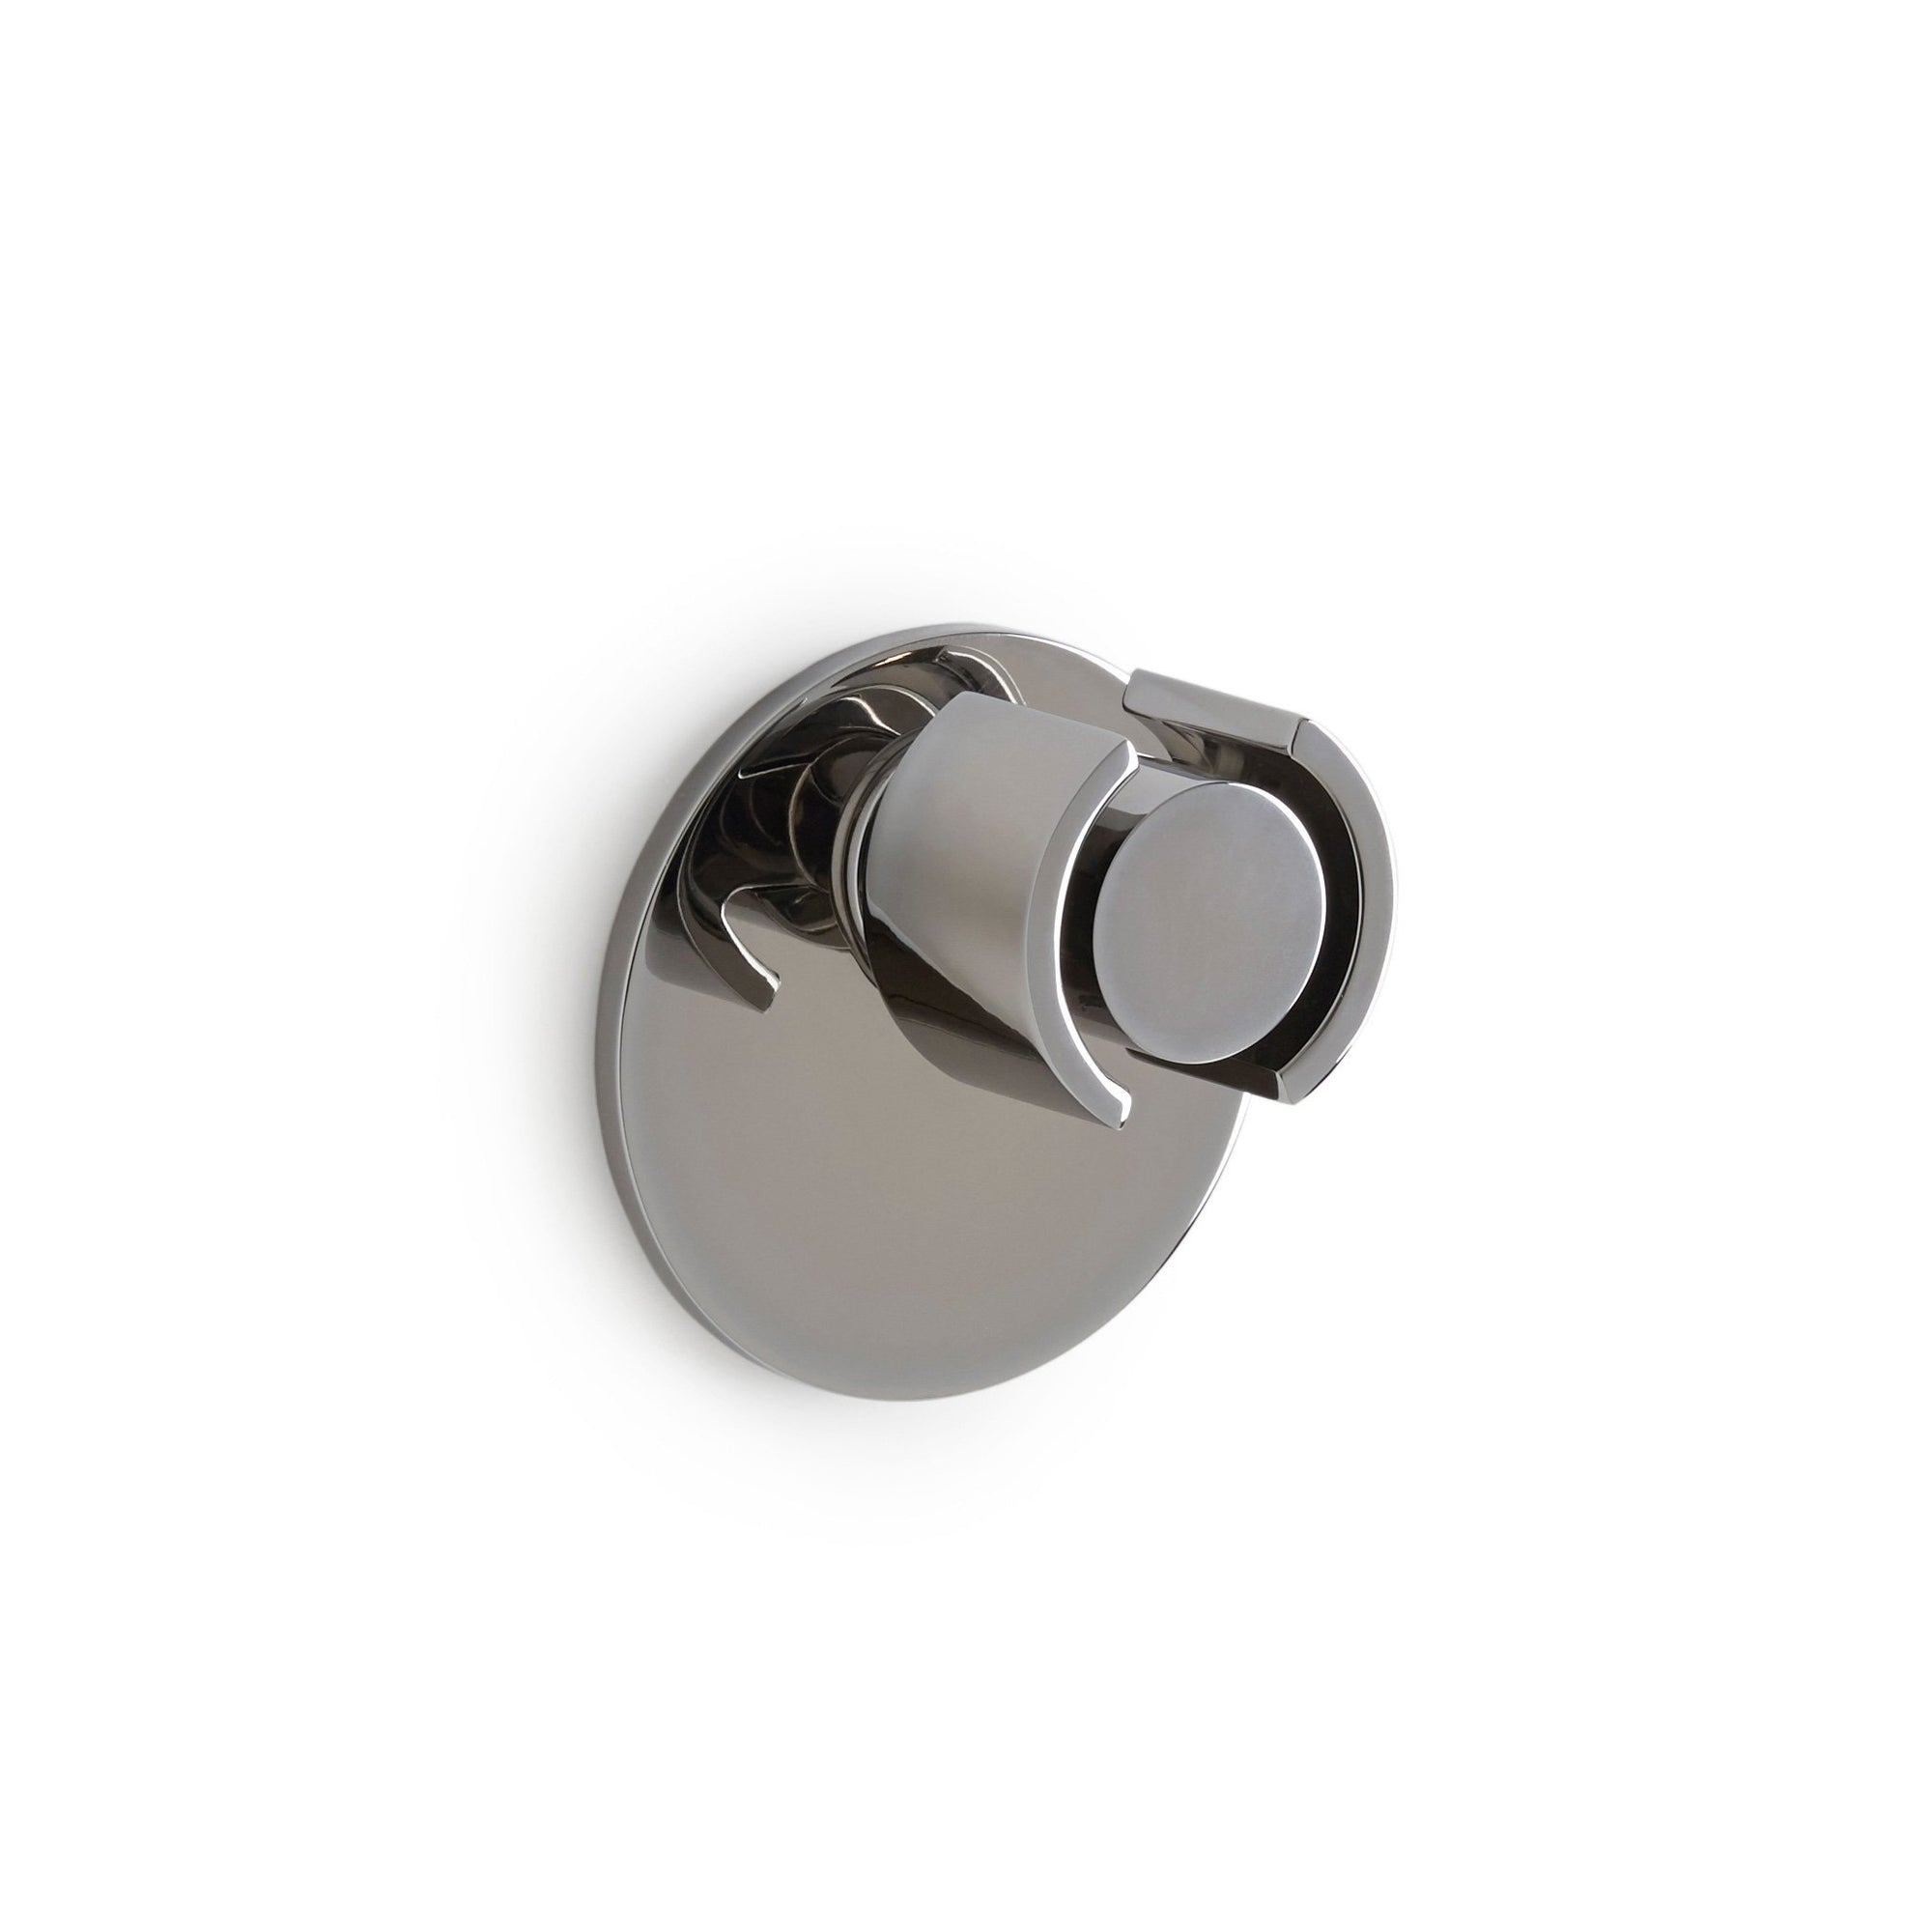 2012DOR-CP Sherle Wagner International Eclipse Door Knob in Polished Chrome metal finish